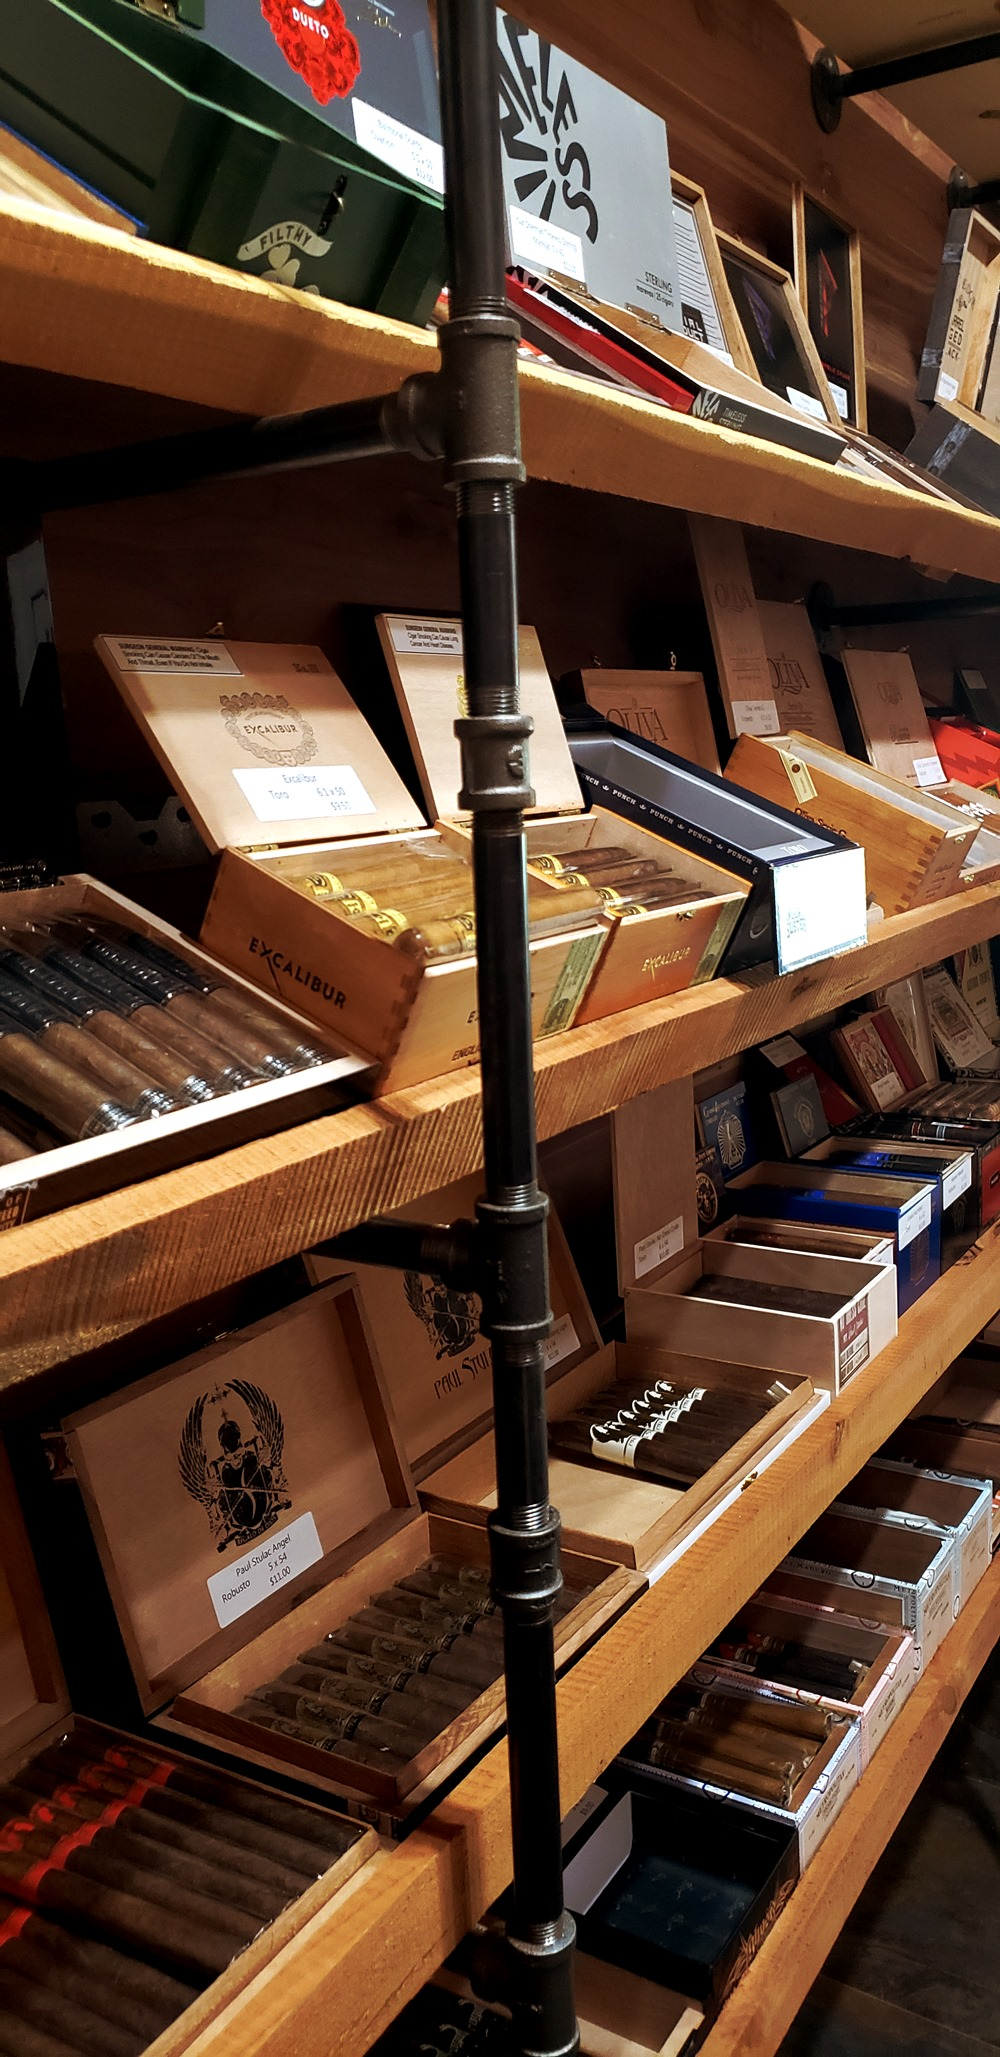 Inside our humidor, showing a wide selection of cigars.